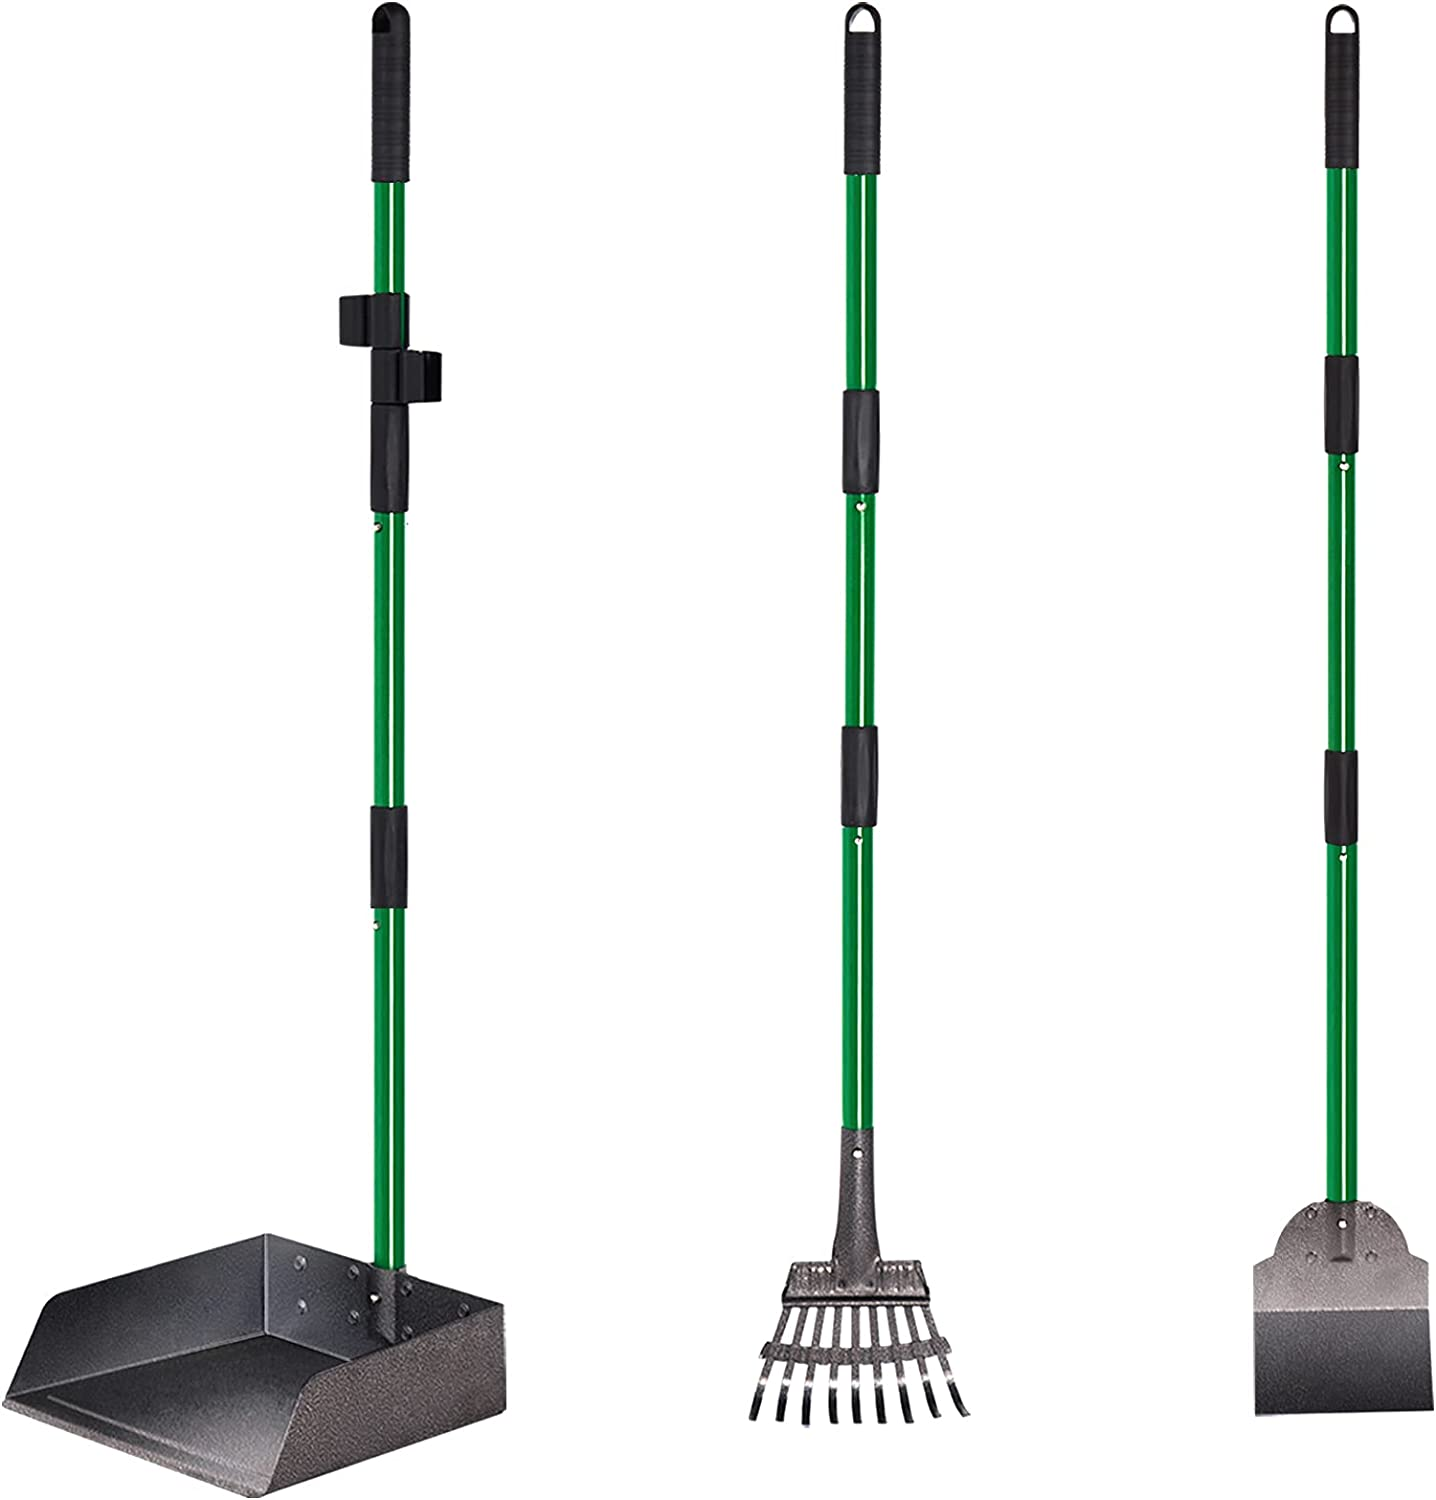 Dog Pooper Scooper Adjustable New Shipping Free Shipping Long Metal Rake and Handle Tray New product